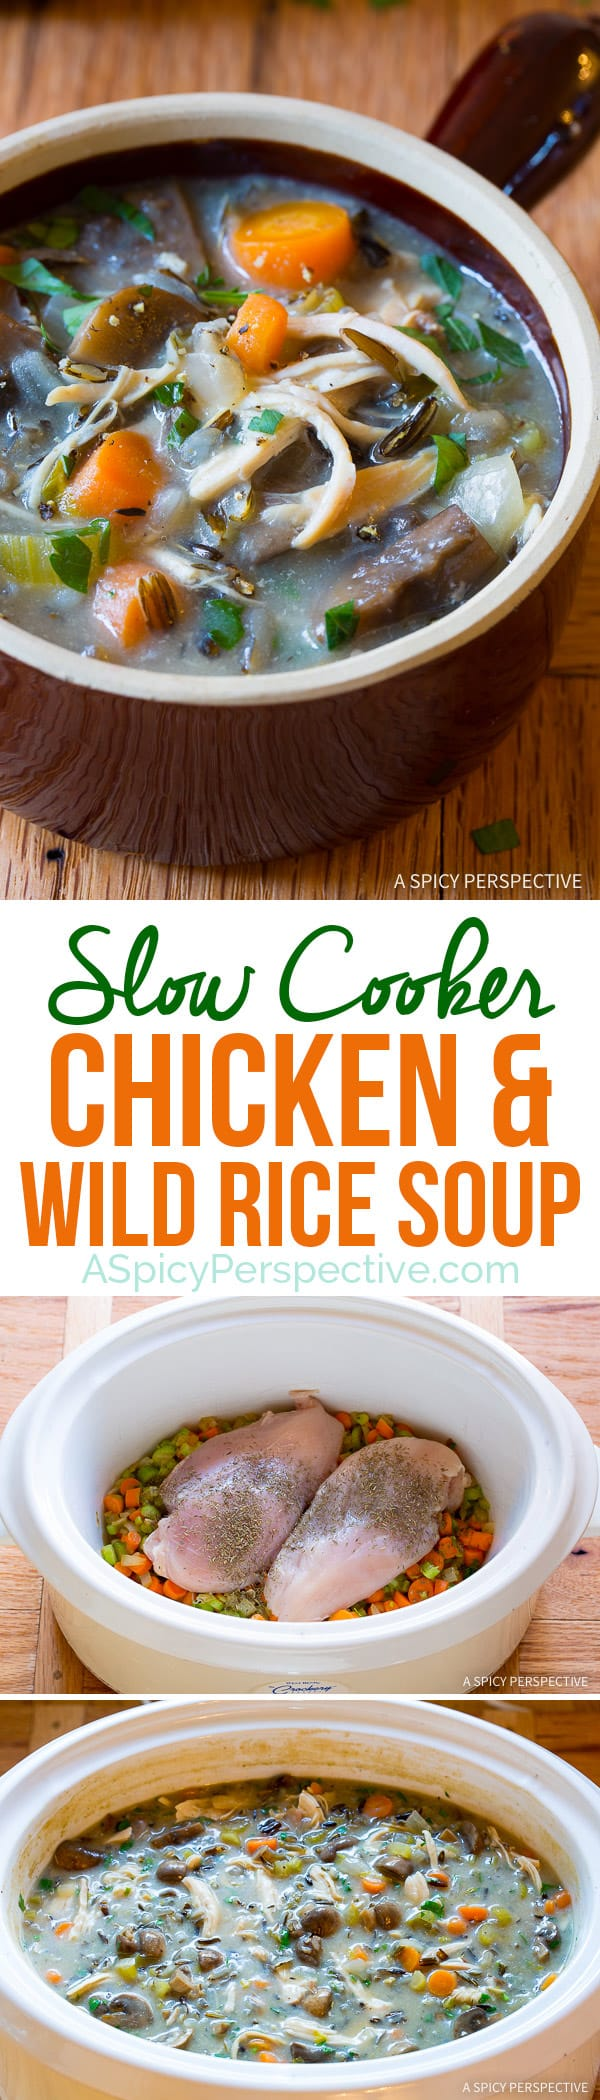 Perfect for January Diets! Healthy Slow Cooker Chicken Wild Rice Soup (Low Fat, Gluten Free, Dairy Free)   ASpicyPerspective.com